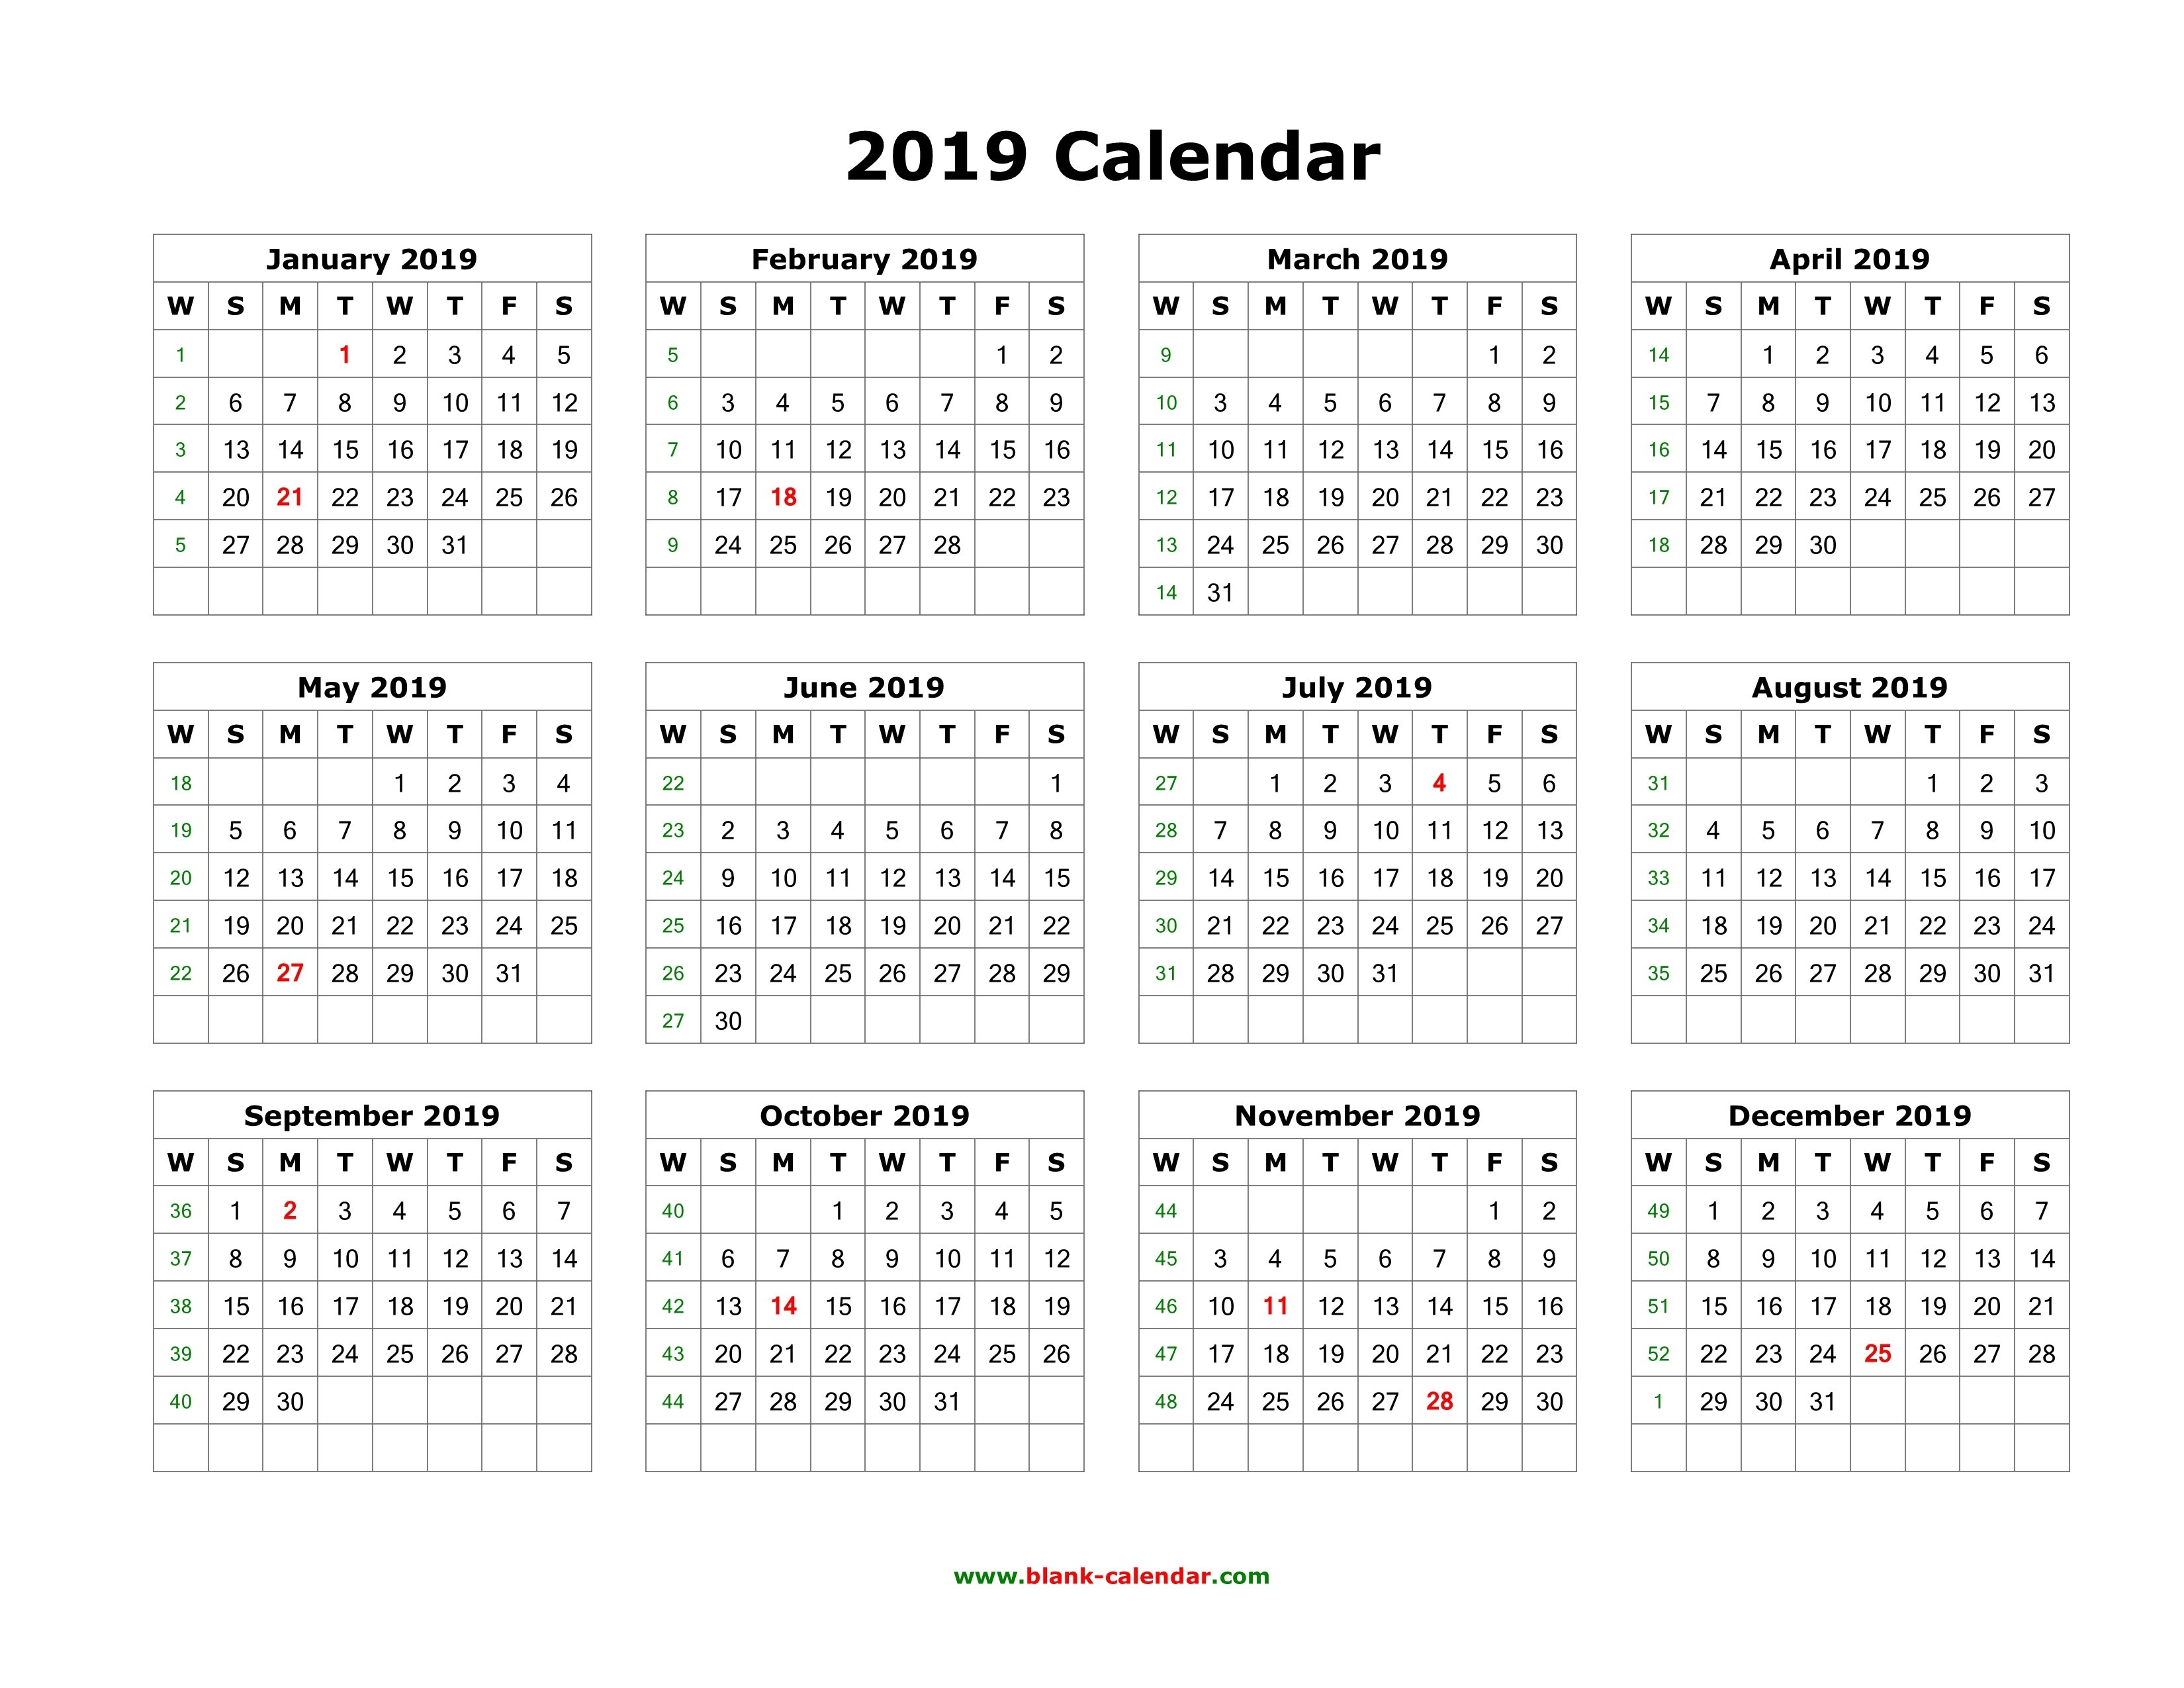 Download Blank Calendar 2019 (12 Months On One Page, Horizontal) Calendar 2019 By Month